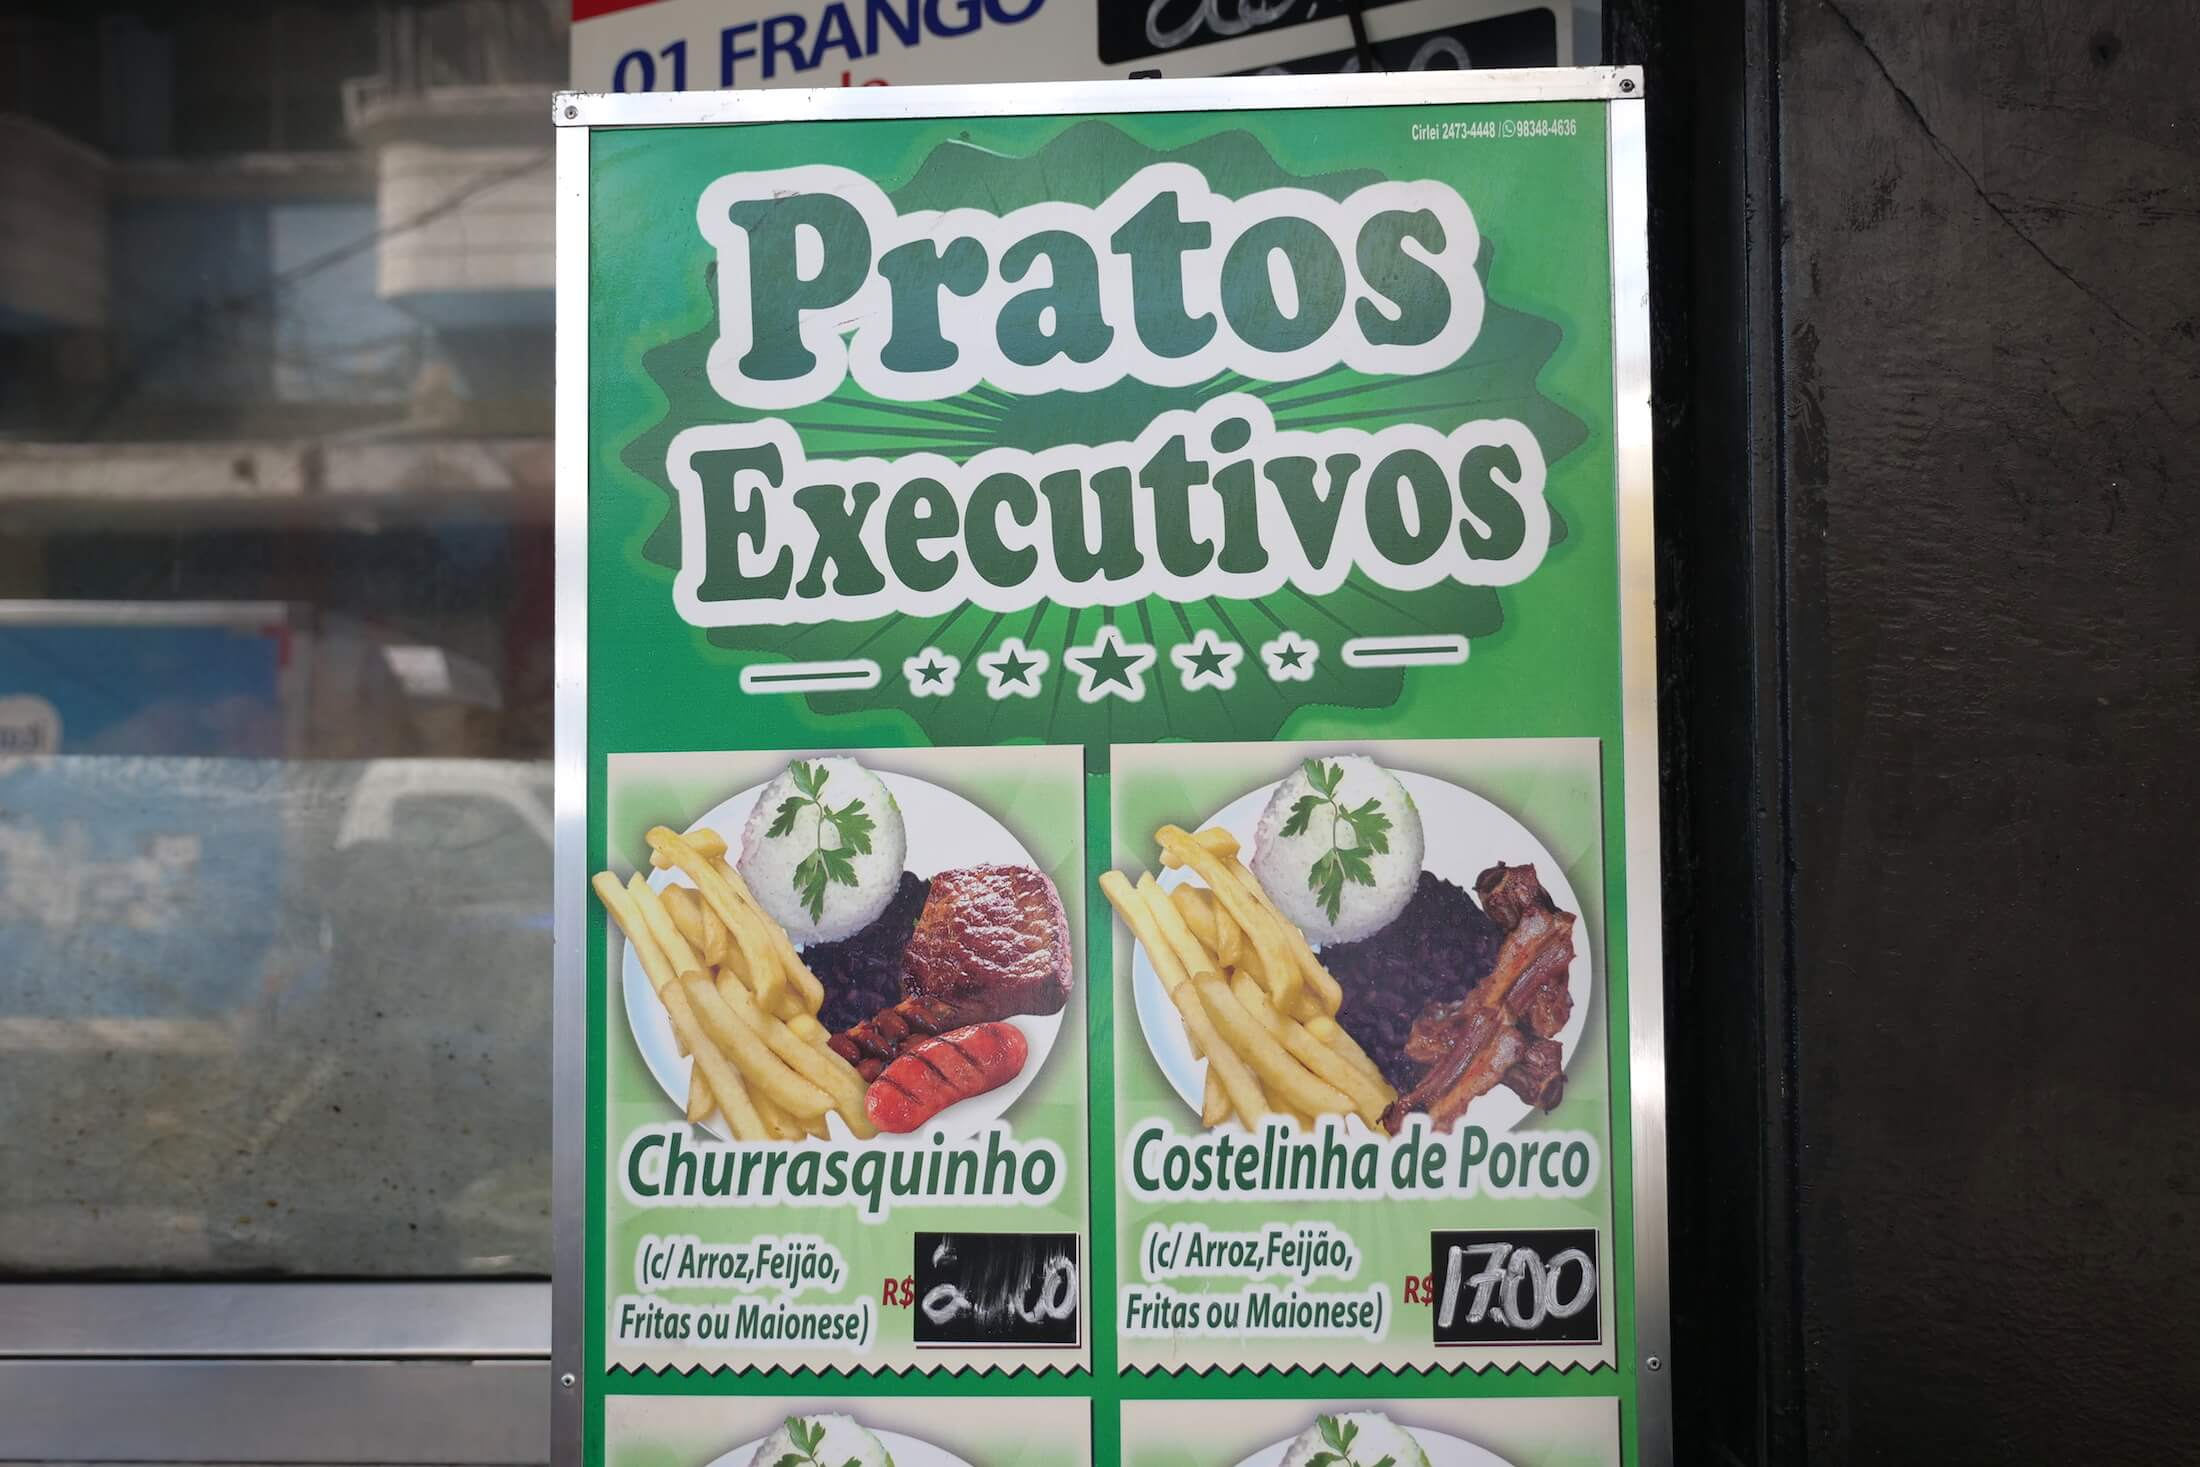 Get a little taste of each of their star menu items by choosing from this set combo menu, Pratos Executivos